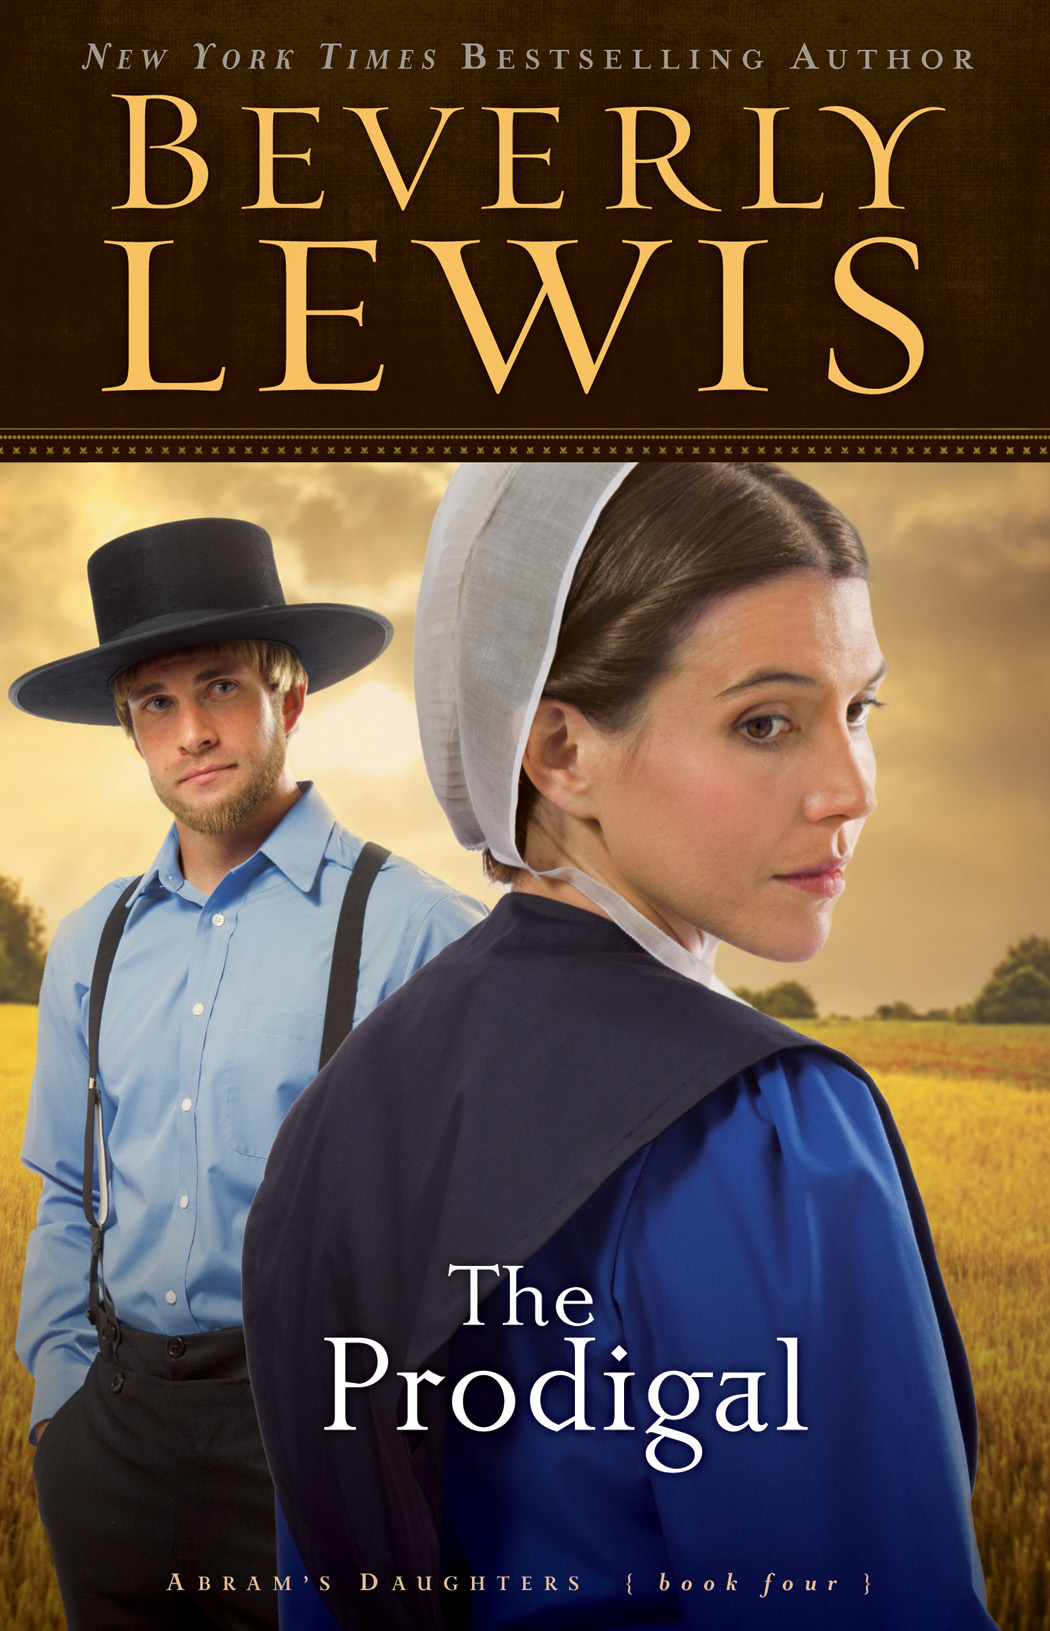 Prodigal, The (Abram's Daughters Book #4) By: Beverly Lewis